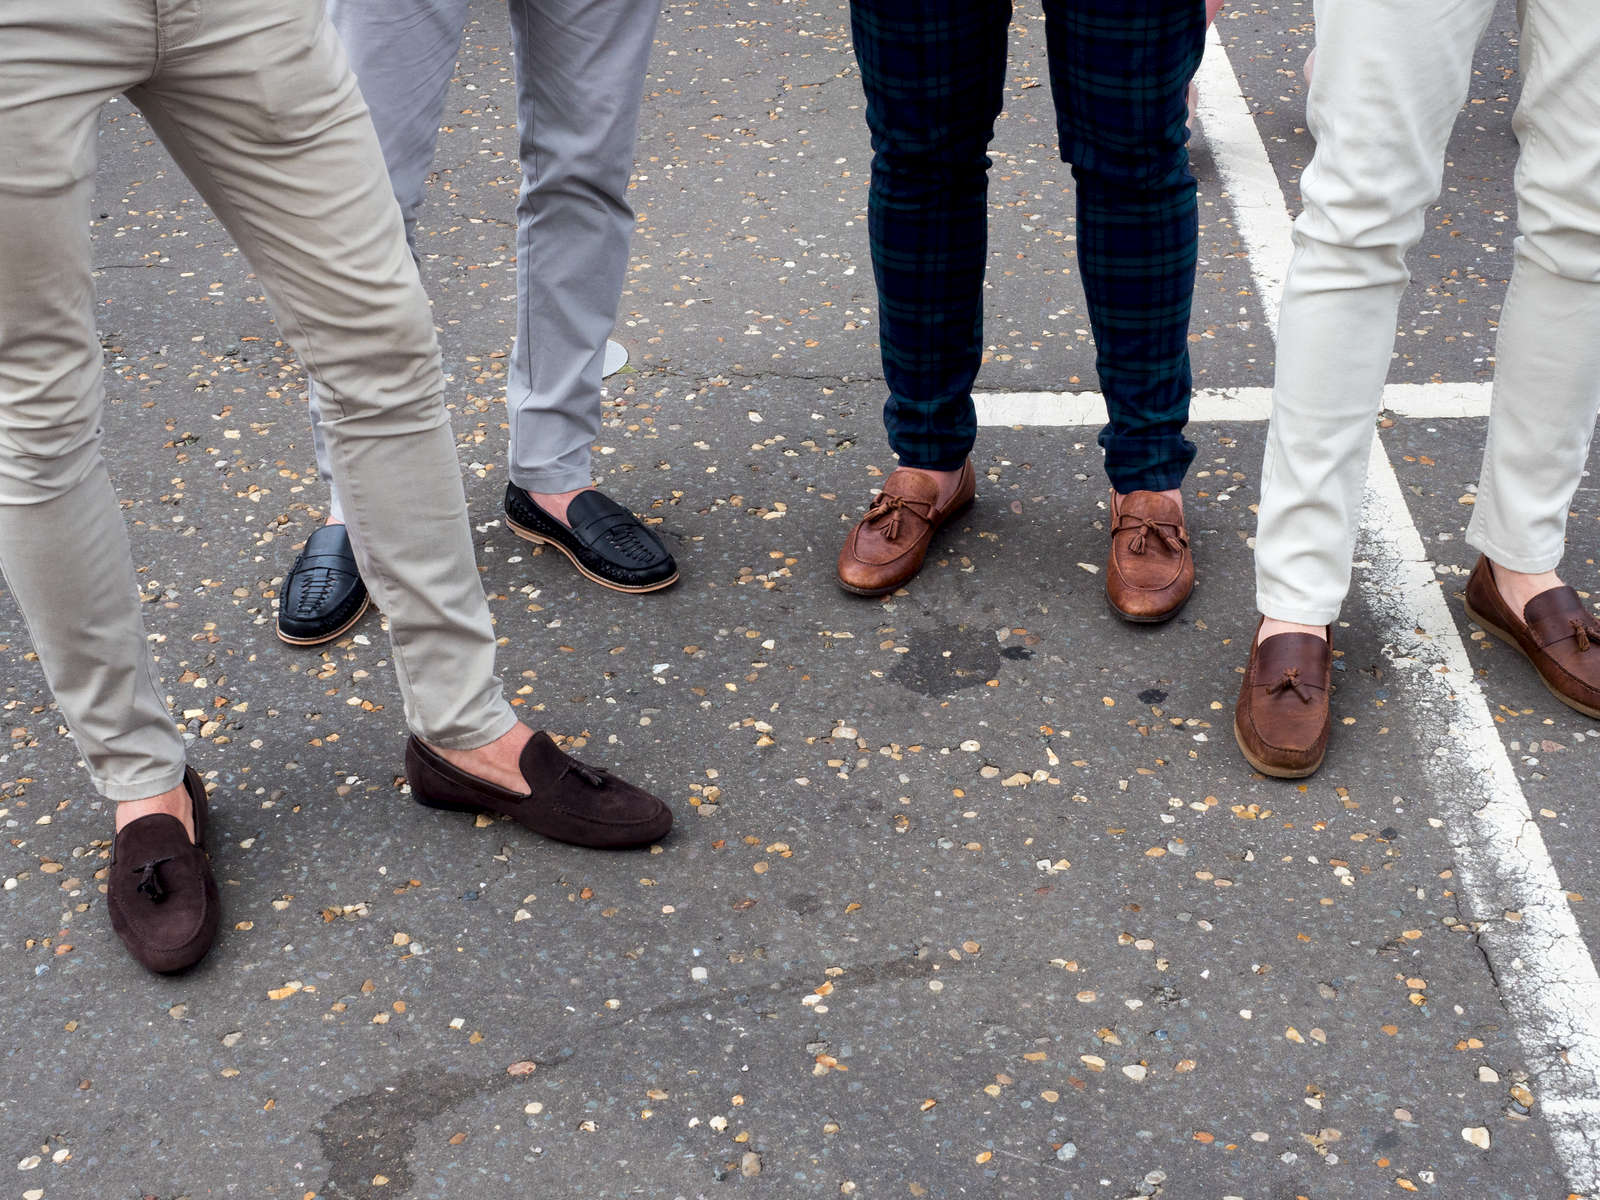 No socks and loafers is the fashion choice by one group of male friends on a day out at Epsom.Ladies' Day is traditionally held on the first Friday of June, a multitude of ladies and gents head to Epsom Downs Racecourse to experience a day full of high octane racing, music, glamour and fashion.